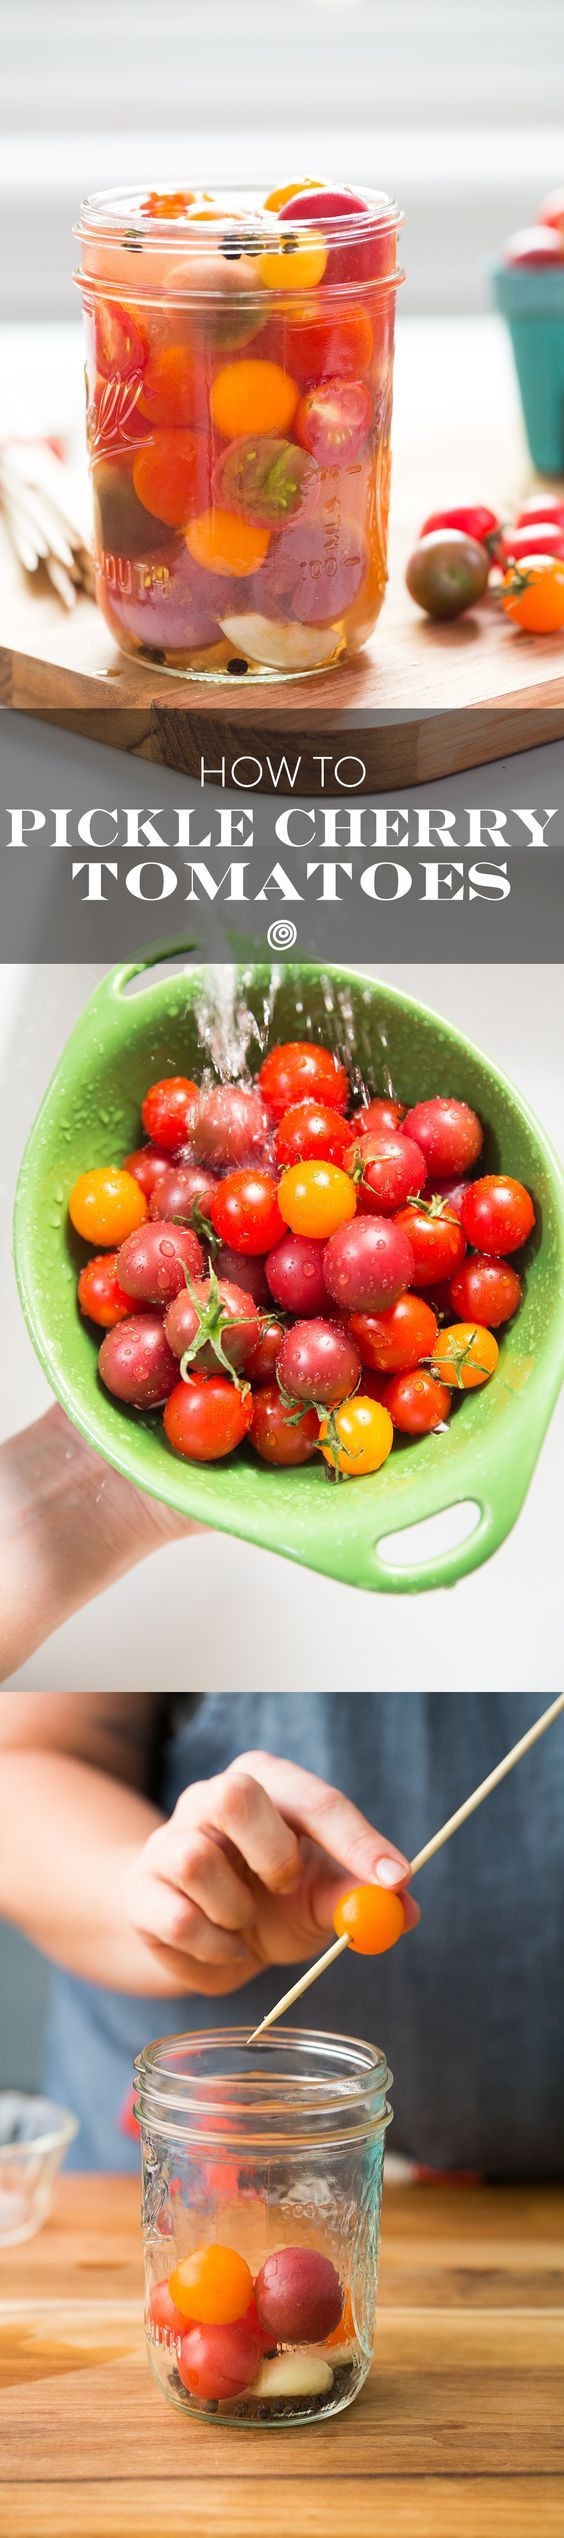 Canning Cherry Tomatoes Recipes  How To Pickle Cherry Tomatoes Recipe